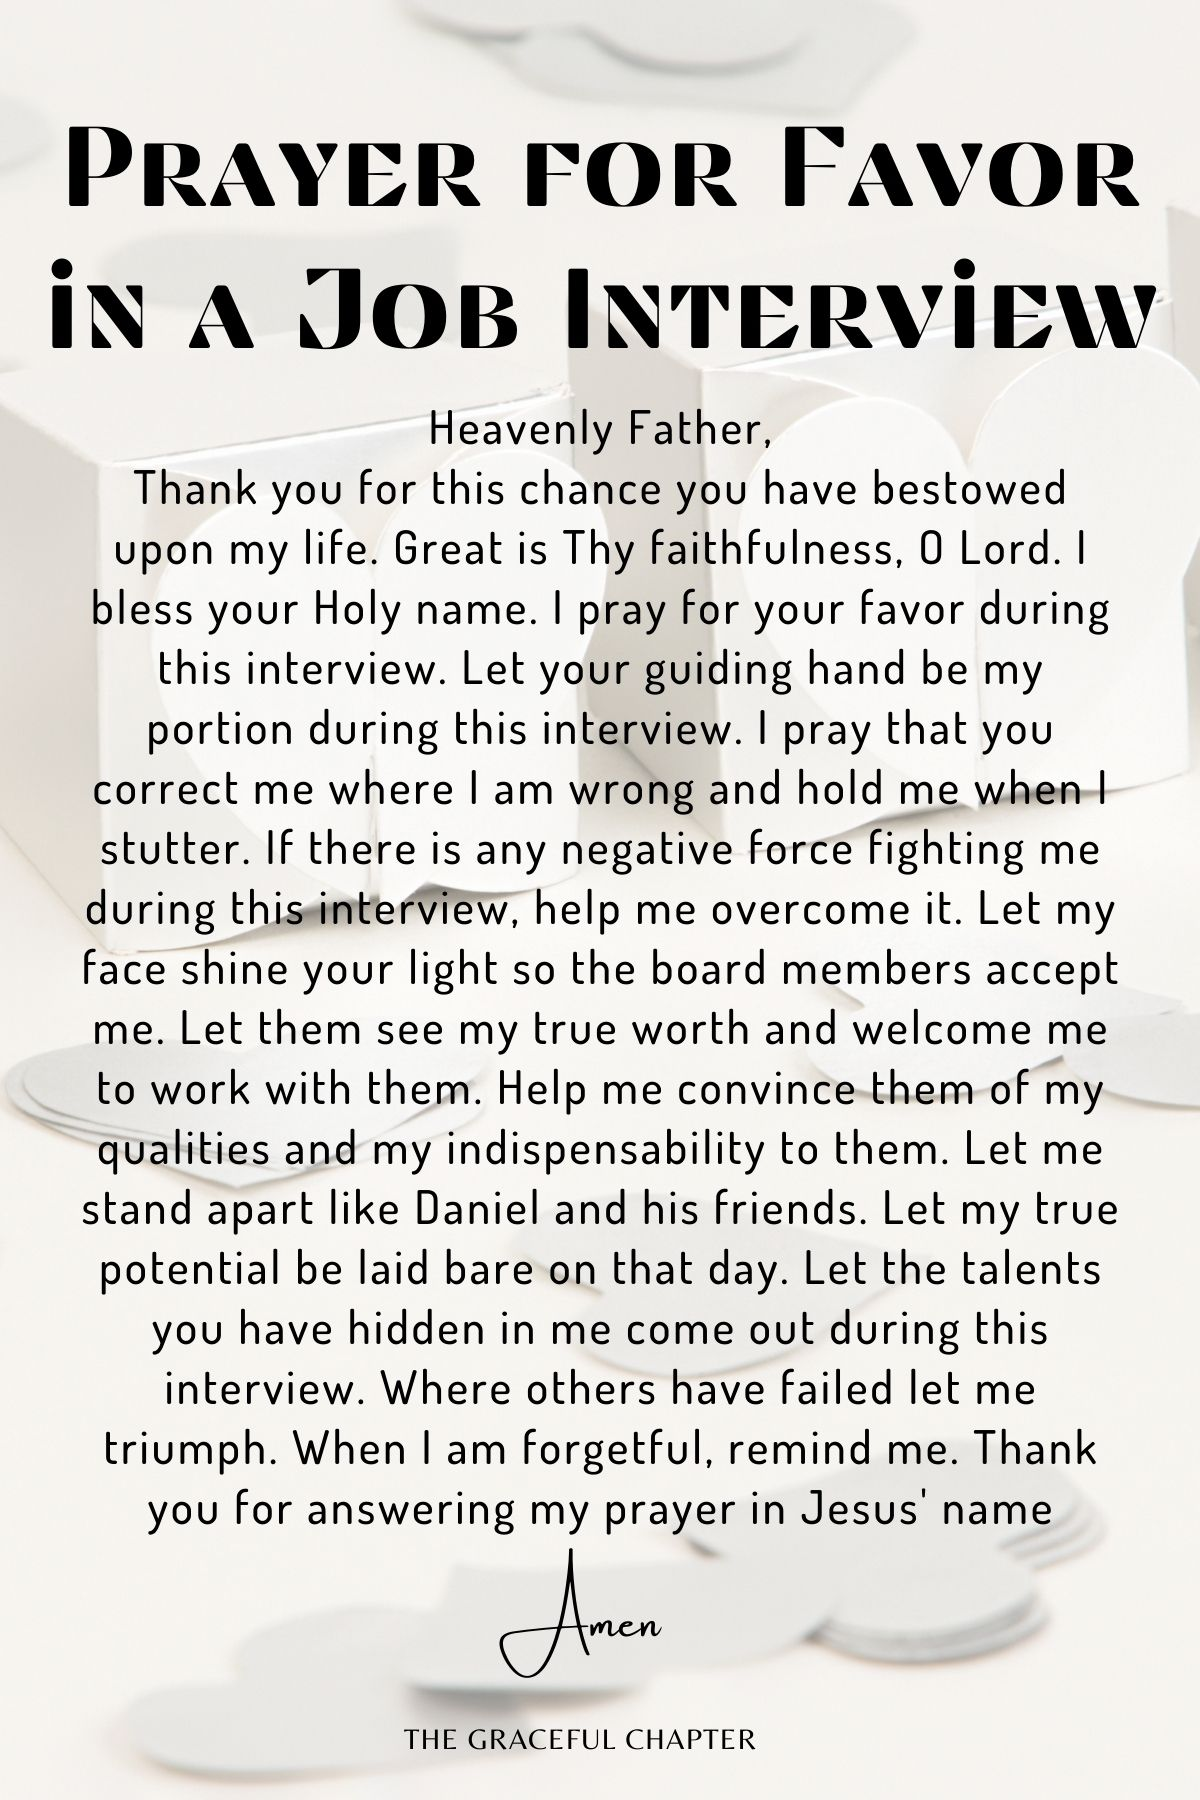 Prayer for favor in a job interview